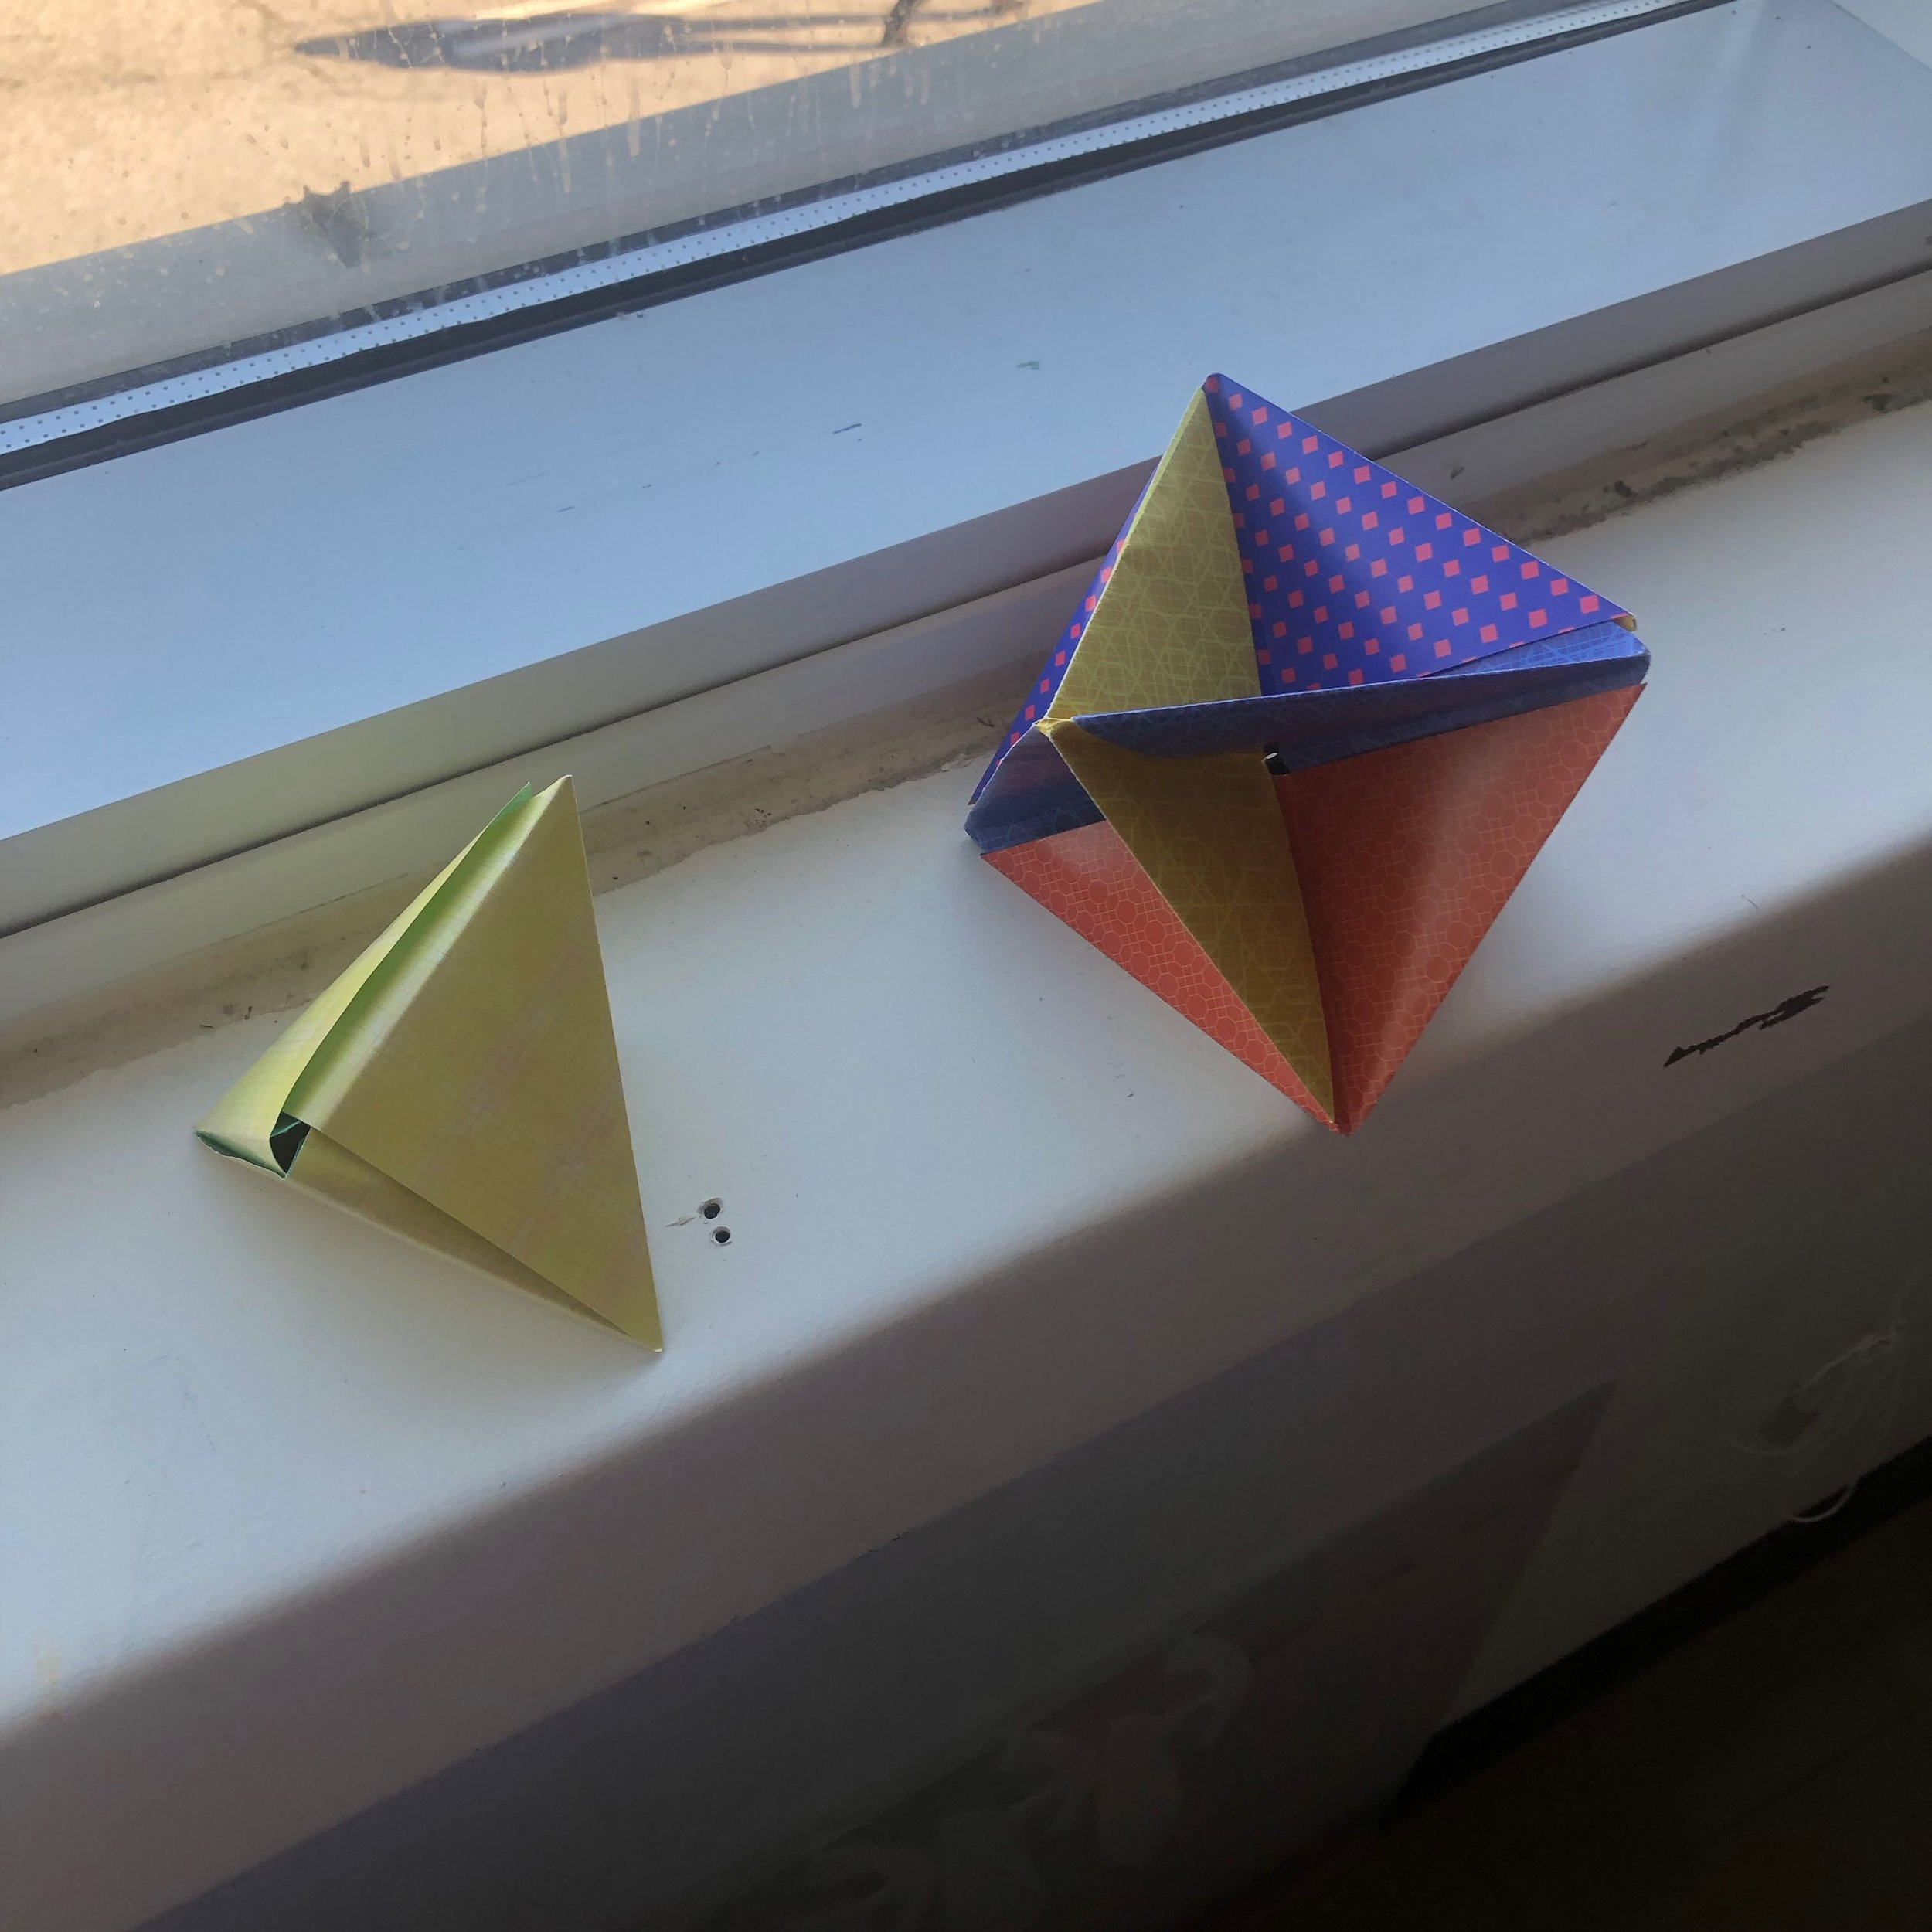 Geometric Experiments with Platonic Solids